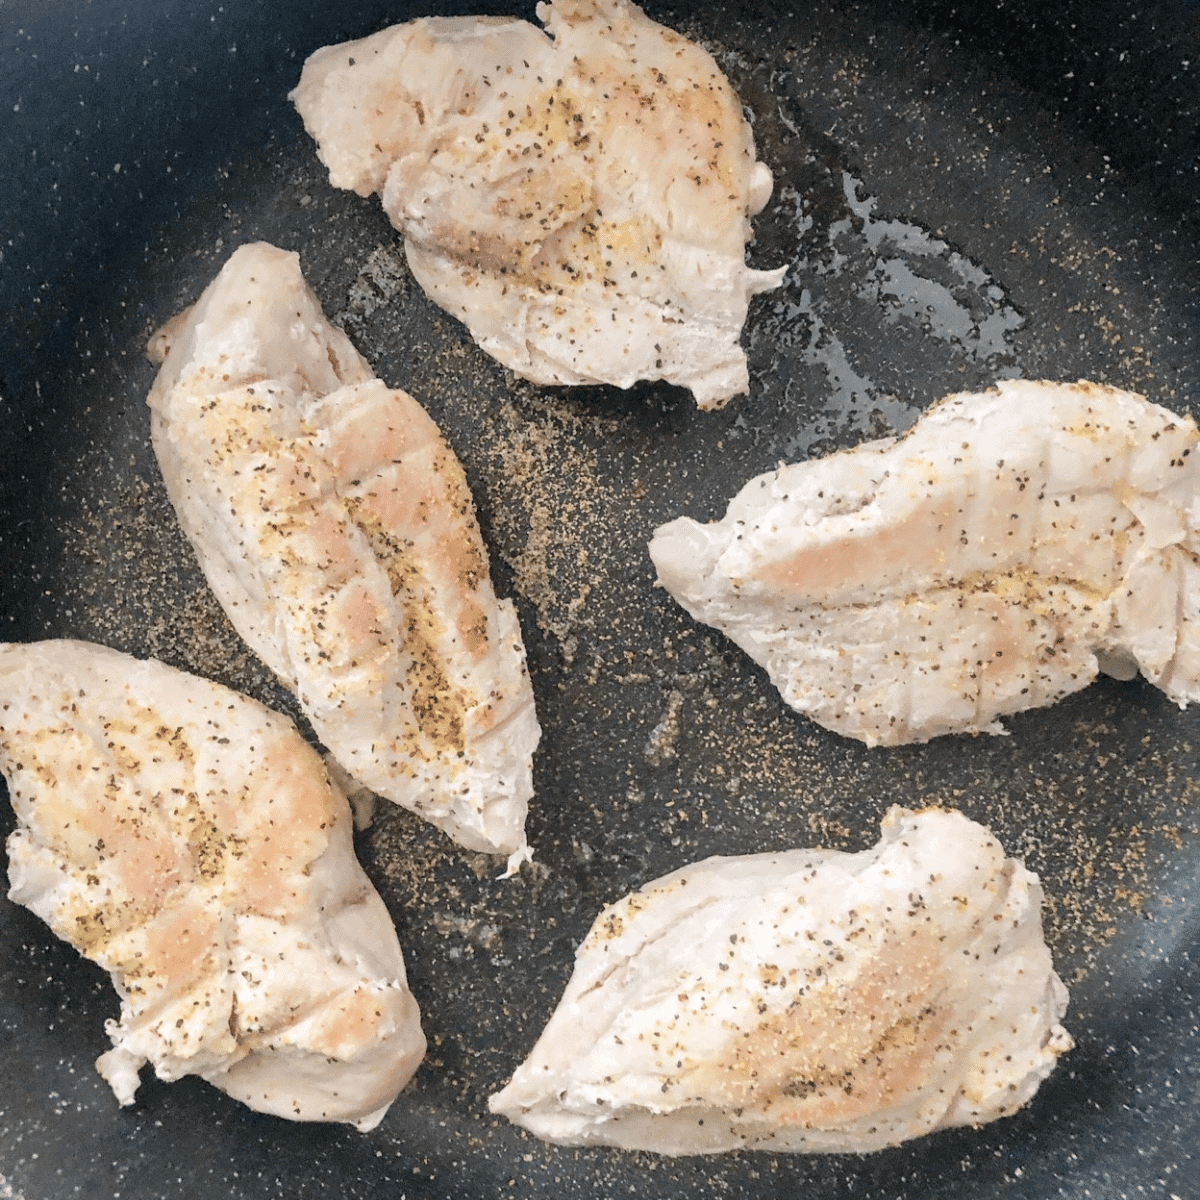 Finish instant pot chicken breasts off by searing them in a frying pan with olive oil